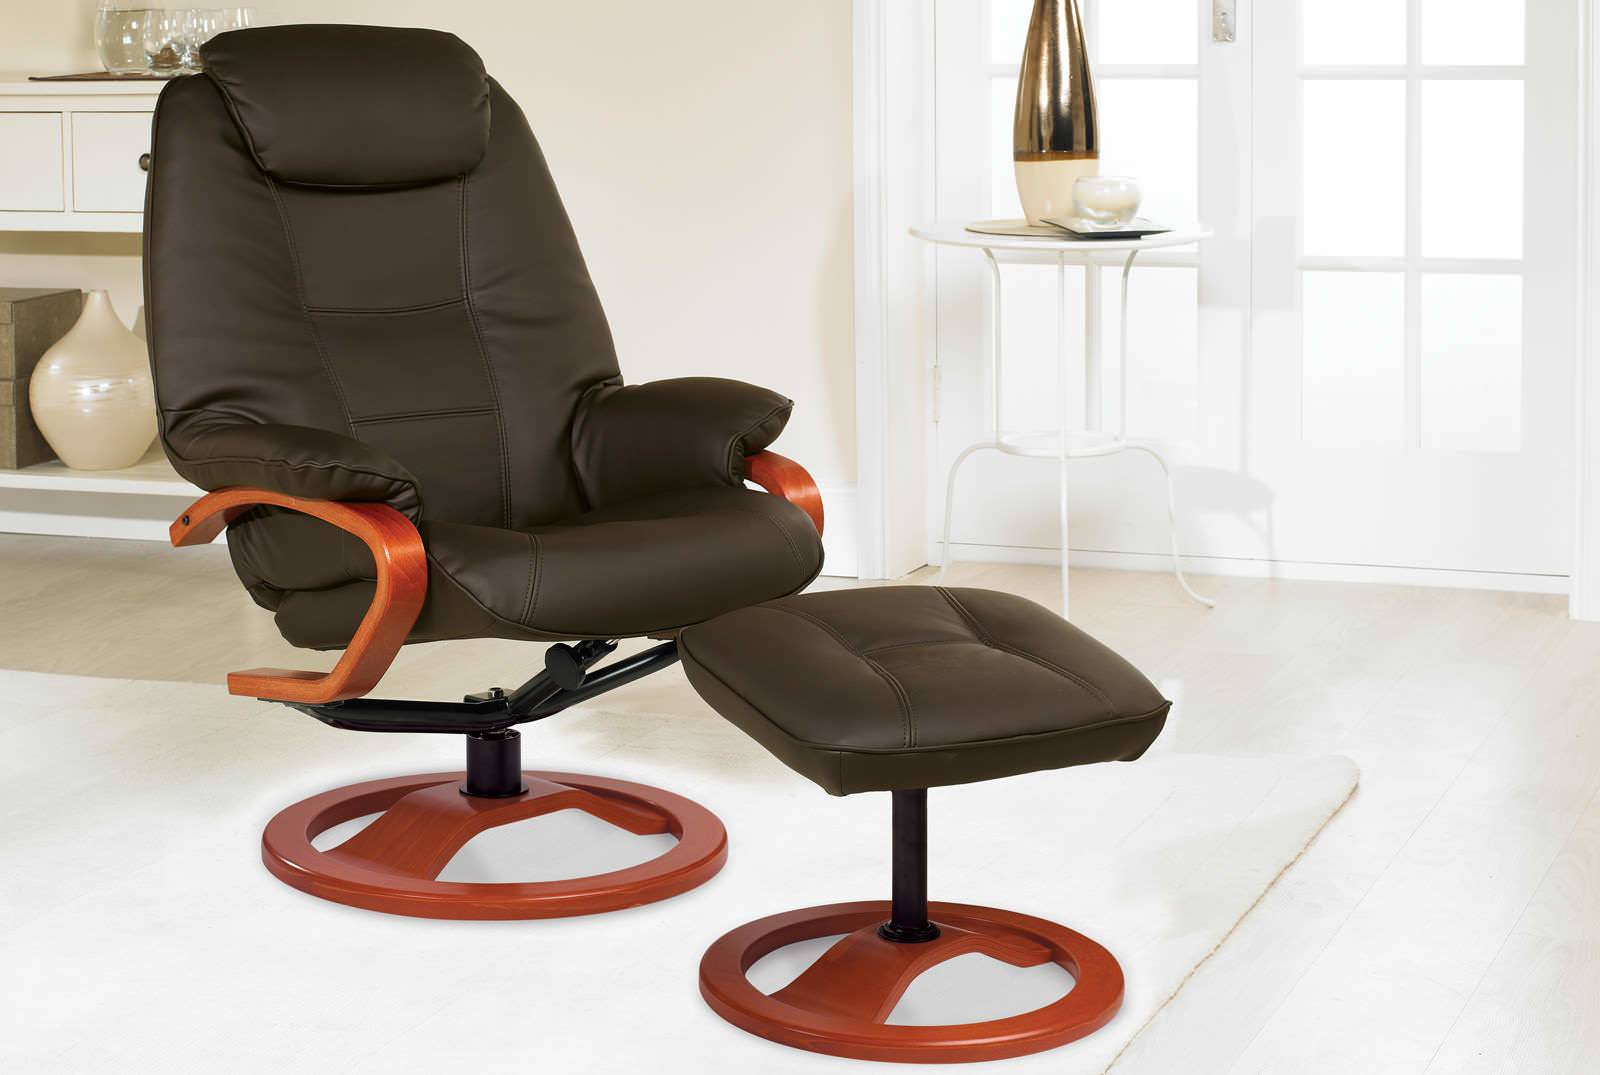 ... Haydock Luxury Reclining Swivel Chair in Chocolate Leather ... & Haydock Luxury Reclining Swivel Chair | HSL islam-shia.org